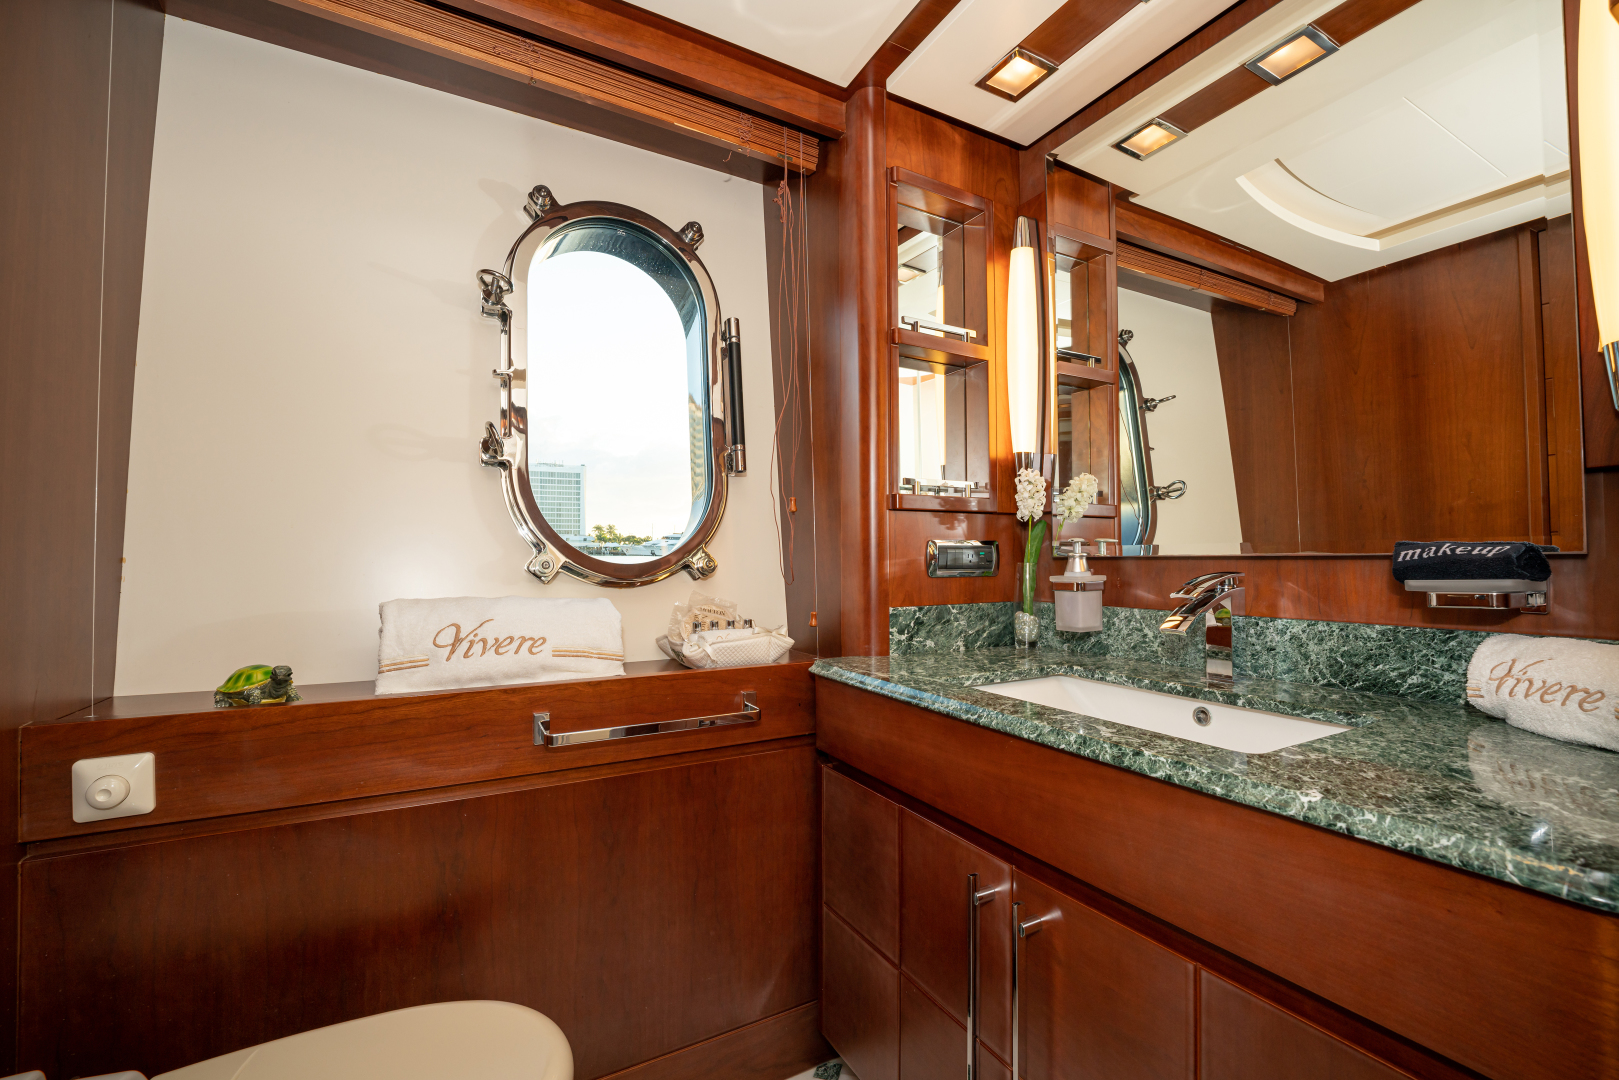 Azimut-2007 2008-VIVERE Palm Beach-Florida-United States-Queen Guest Stateroom Bath (Stbd side)-1623924   Thumbnail